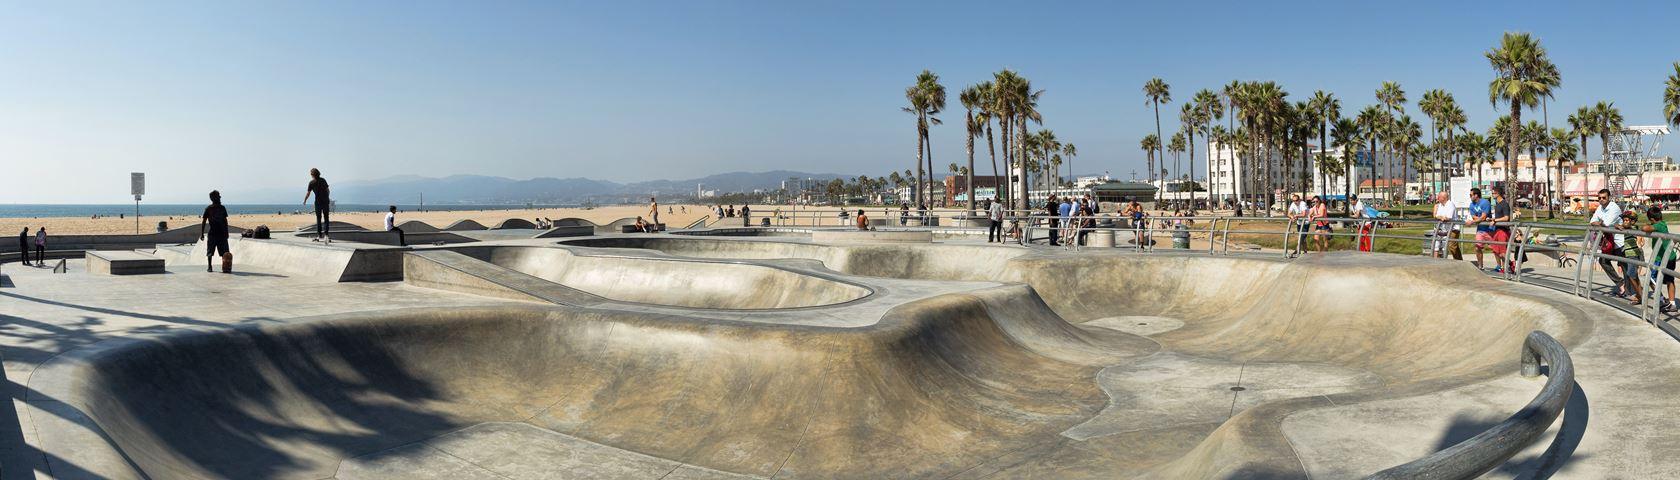 Venice Skate Park Images WallpaperFusion by Binary Fortress 1680x480